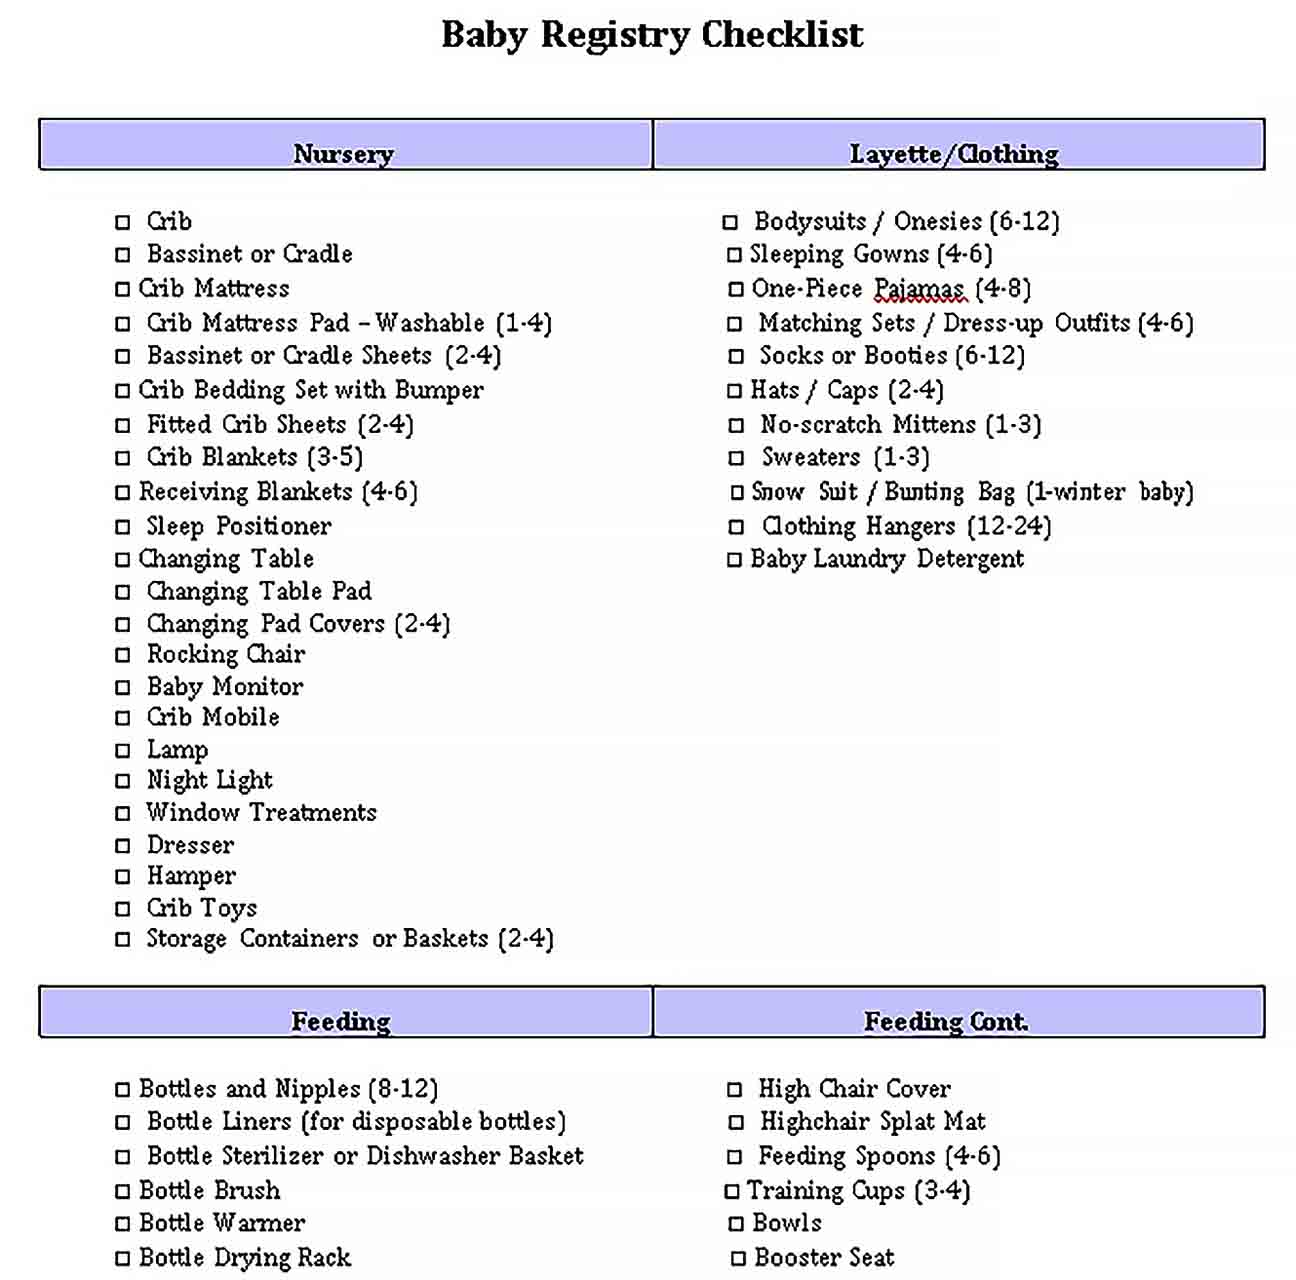 Template Complete Registry Checklist for Baby